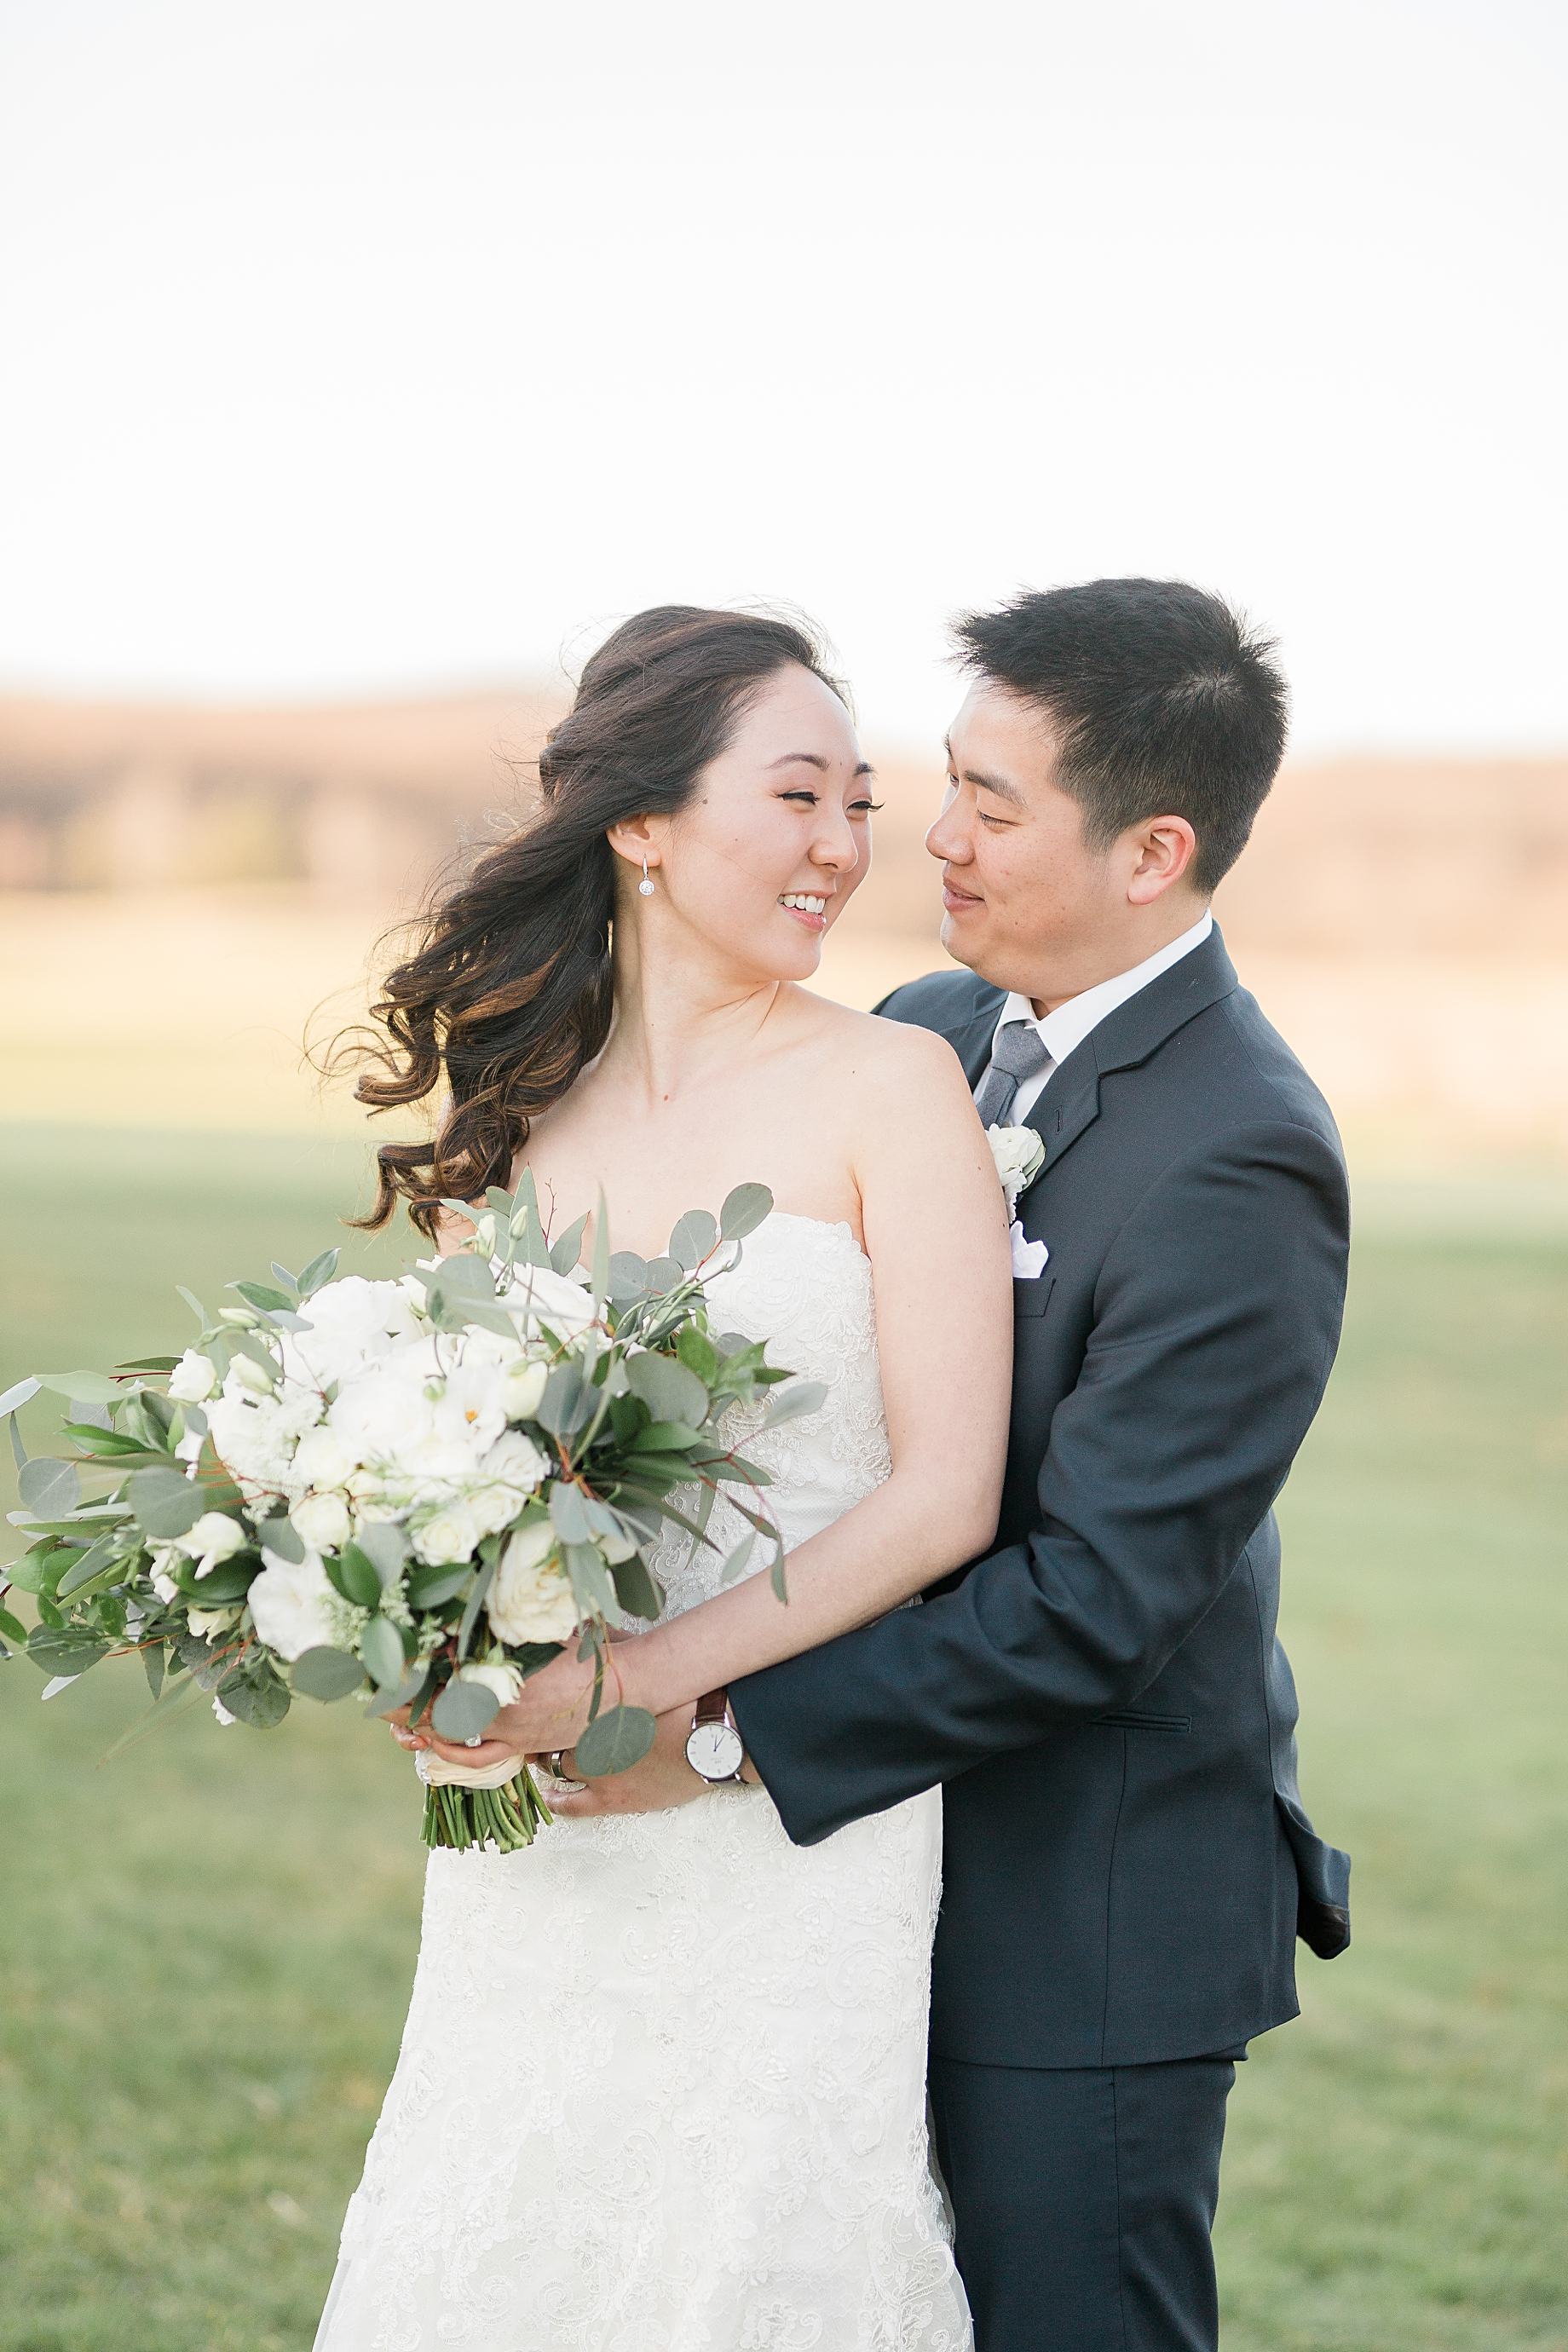 Elegant Winter Wedding at French Creek Golf Club Portraits